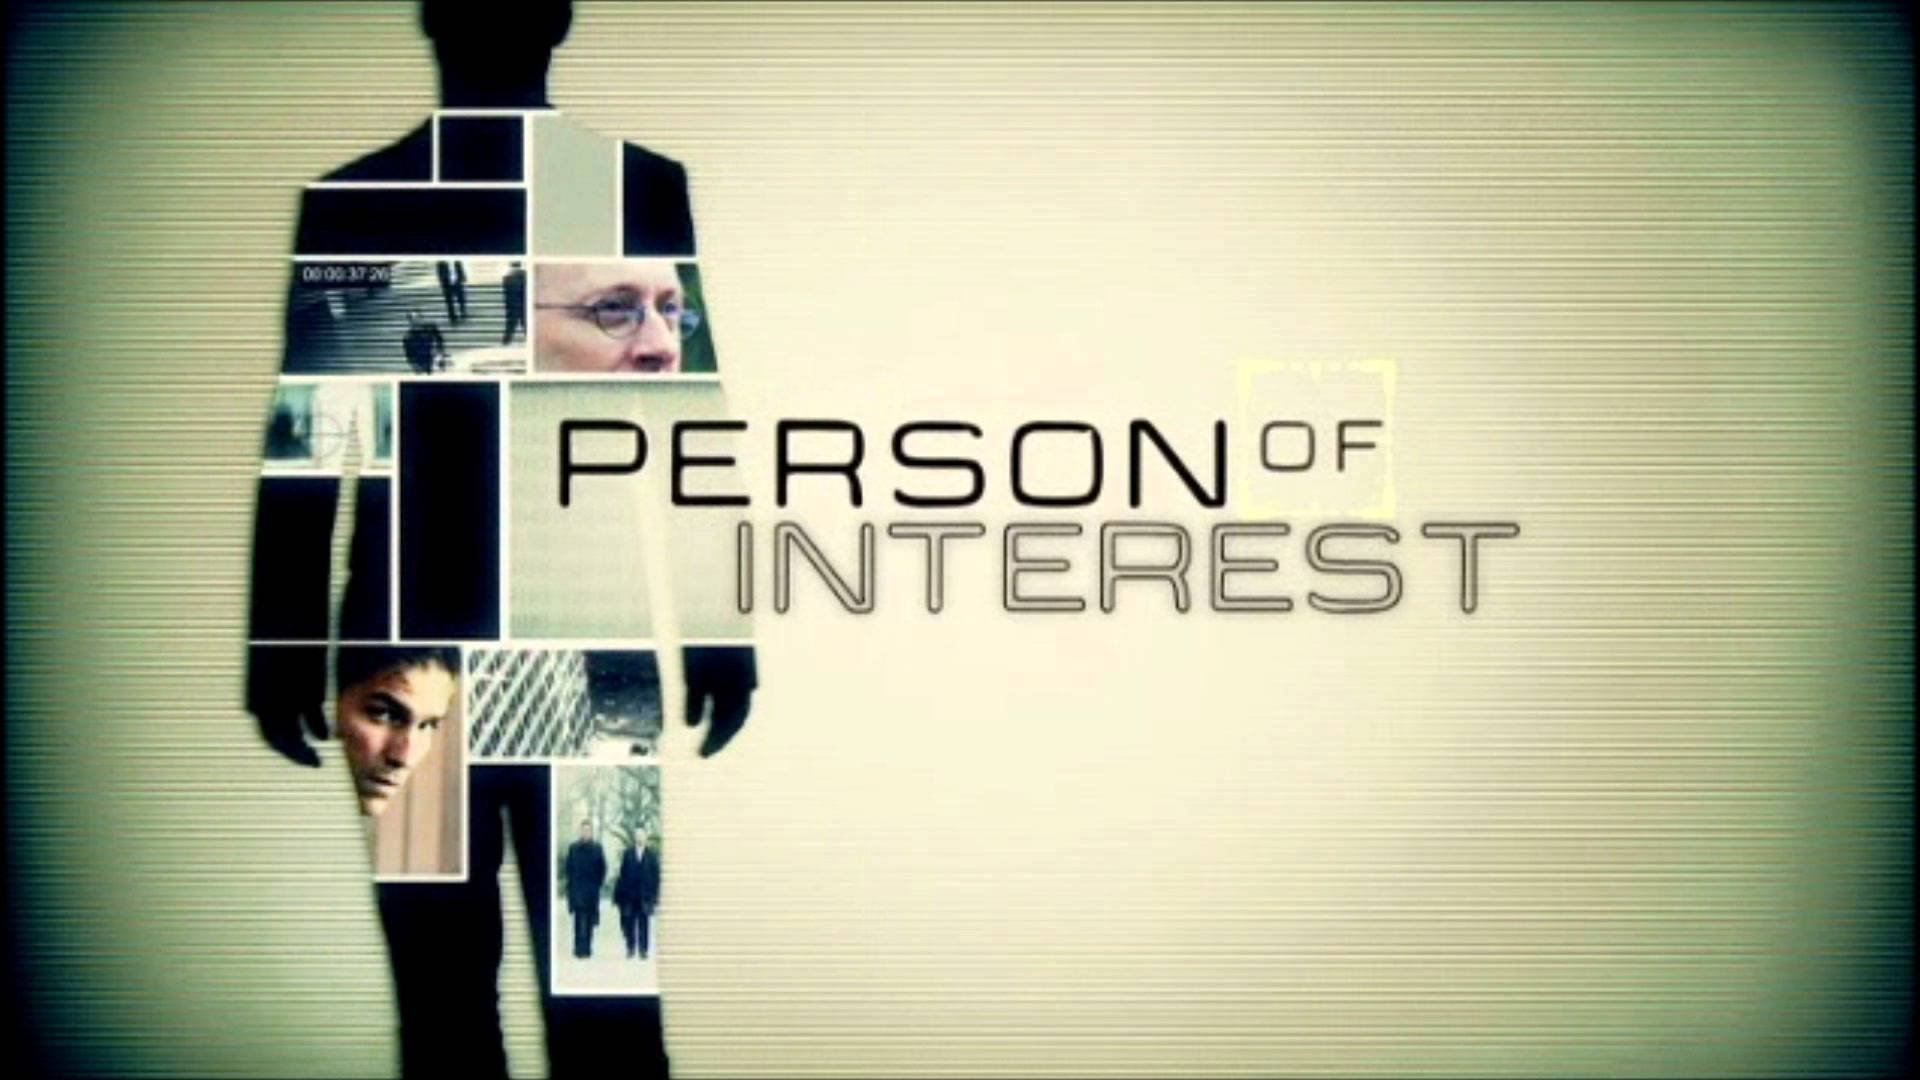 person of interest wallpapers 1920x1080 - photo #26